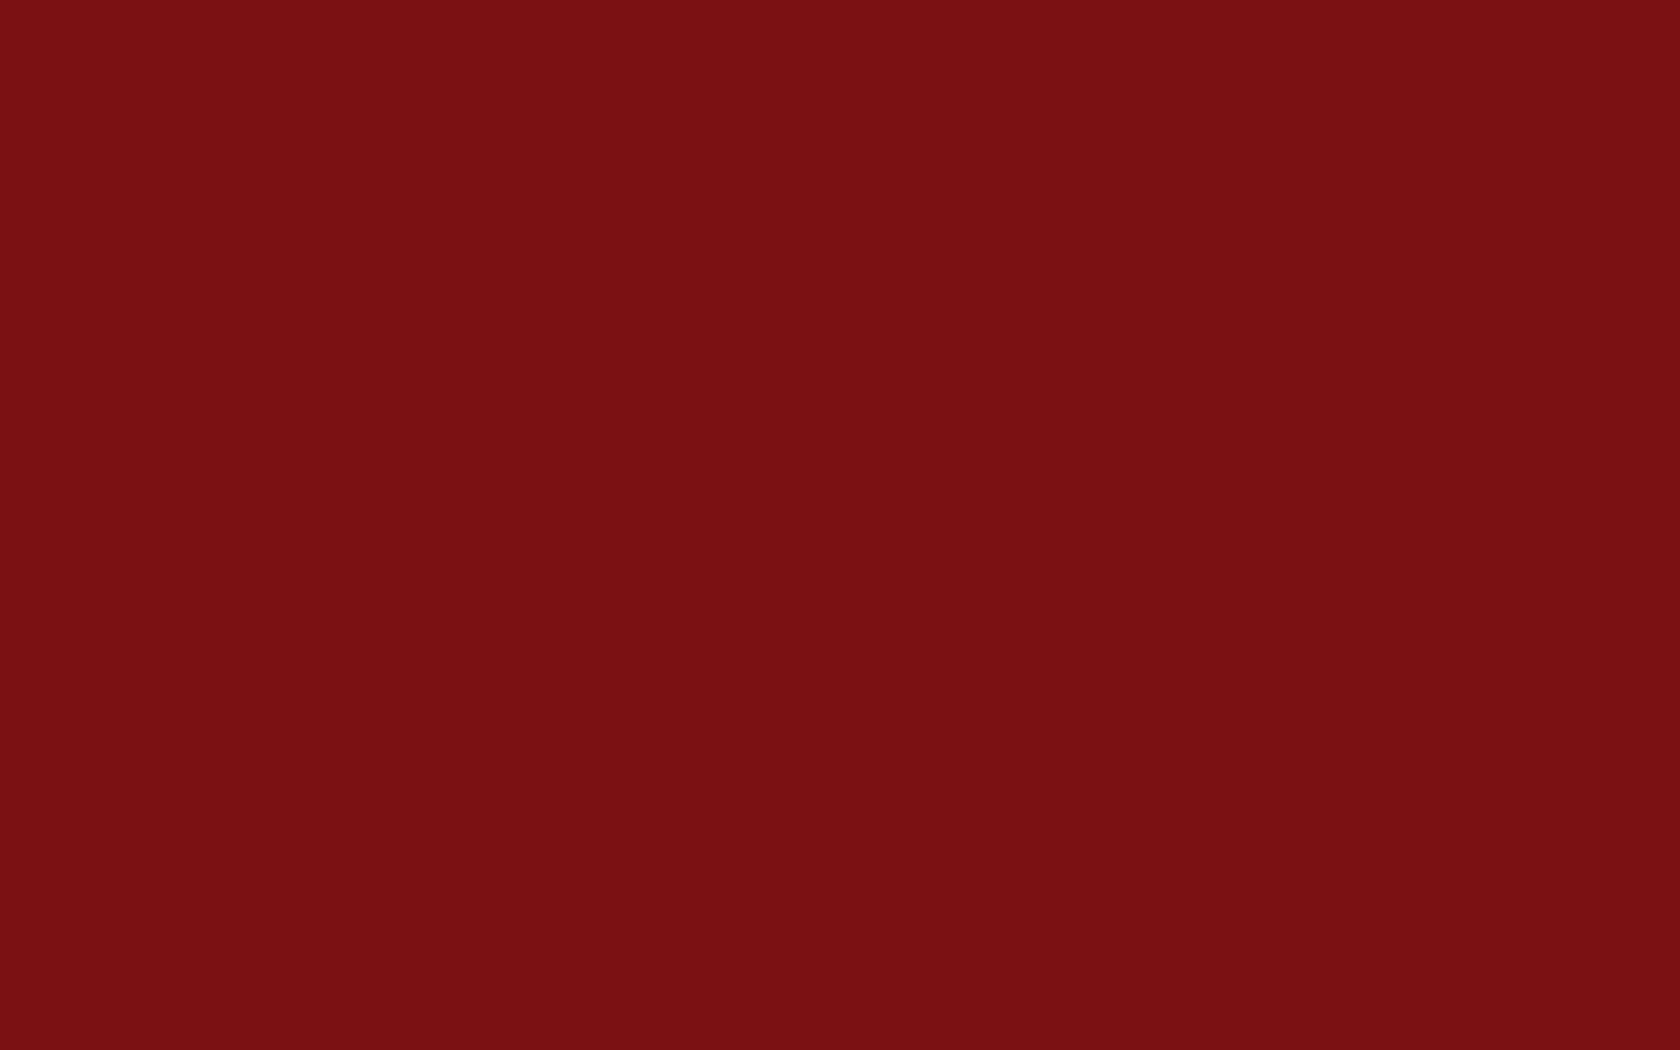 1680x1050 UP Maroon Solid Color Background